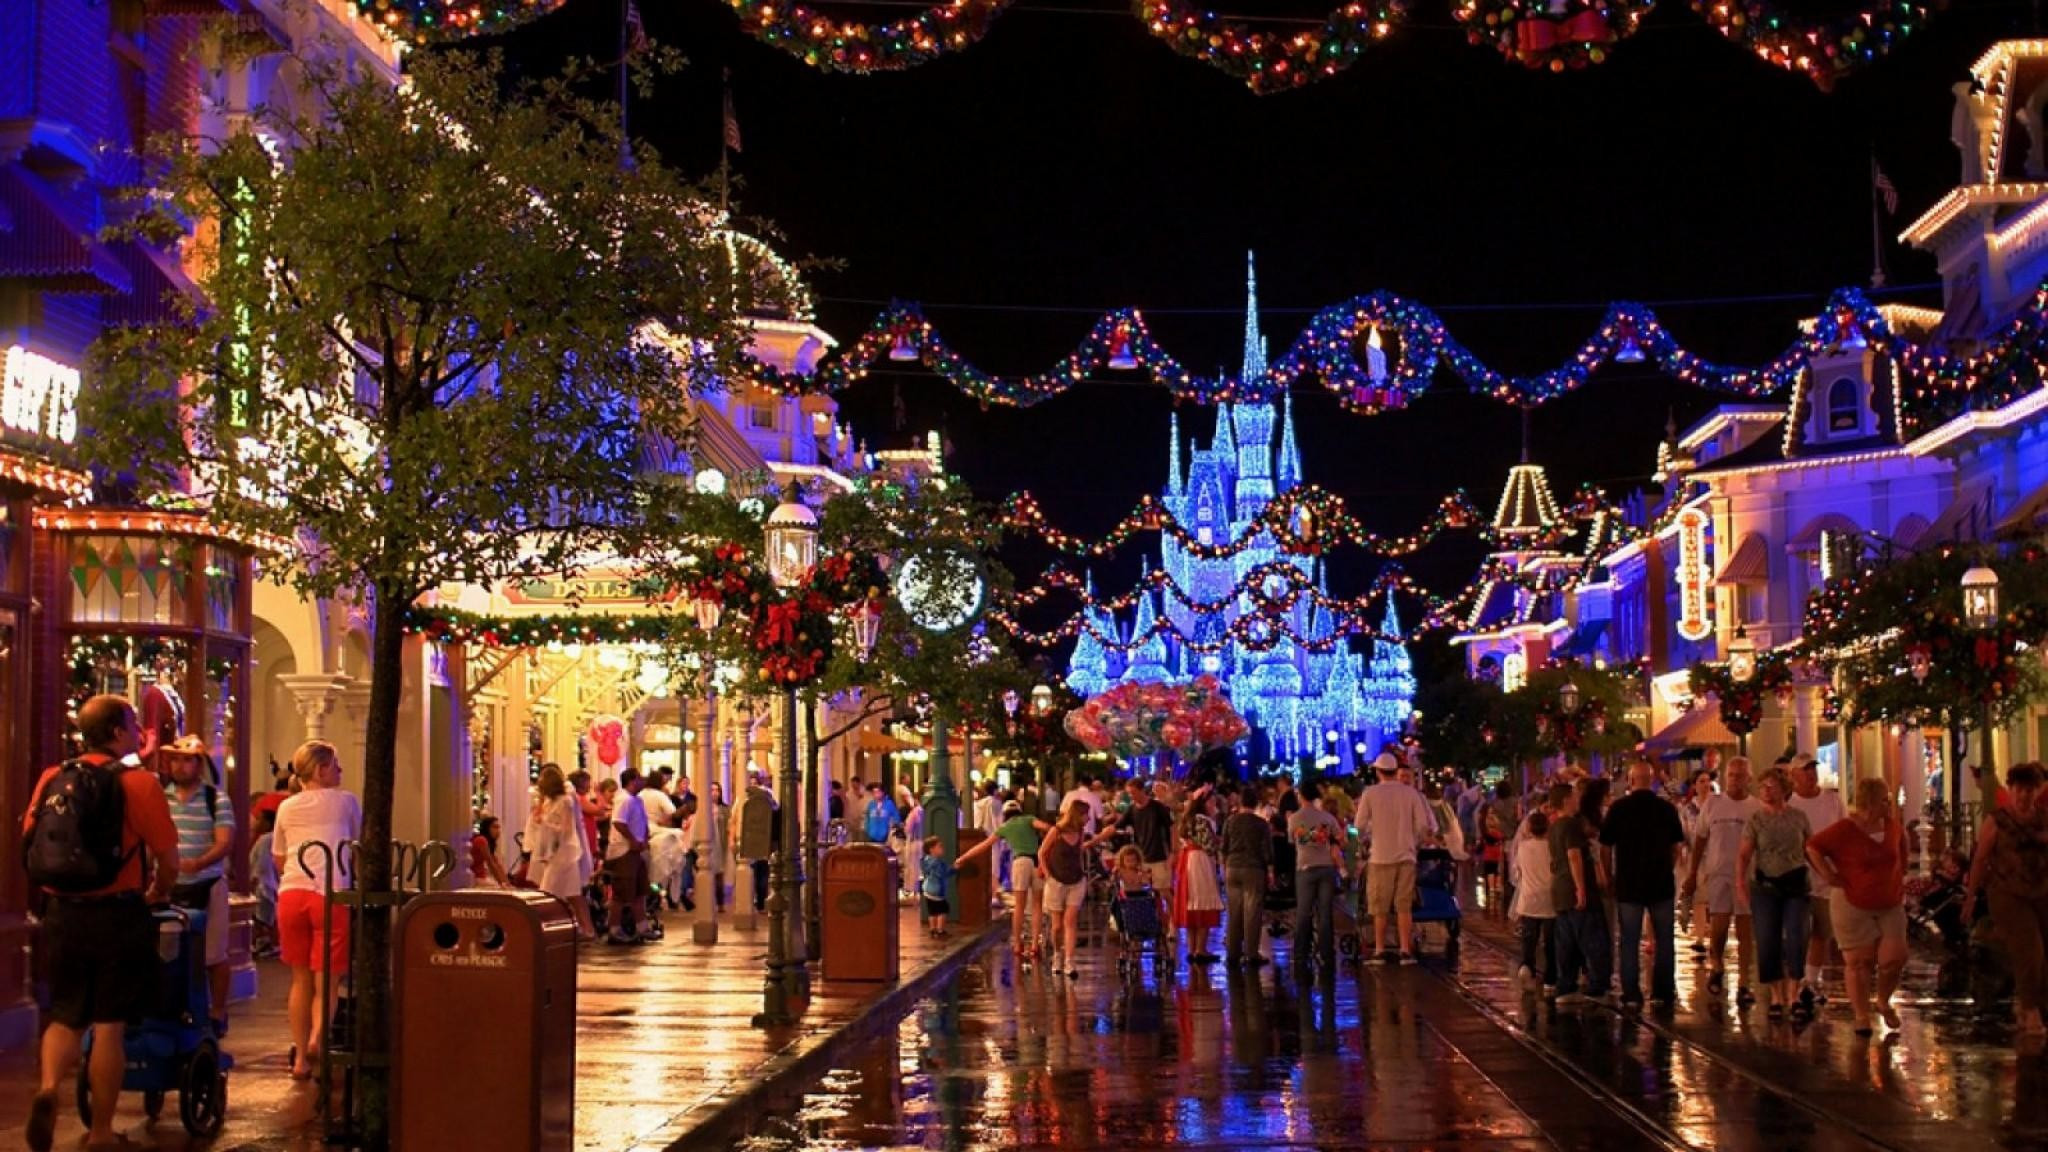 2048x1152 wallpaper.wiki-New-look-people-see-disneyland-free-